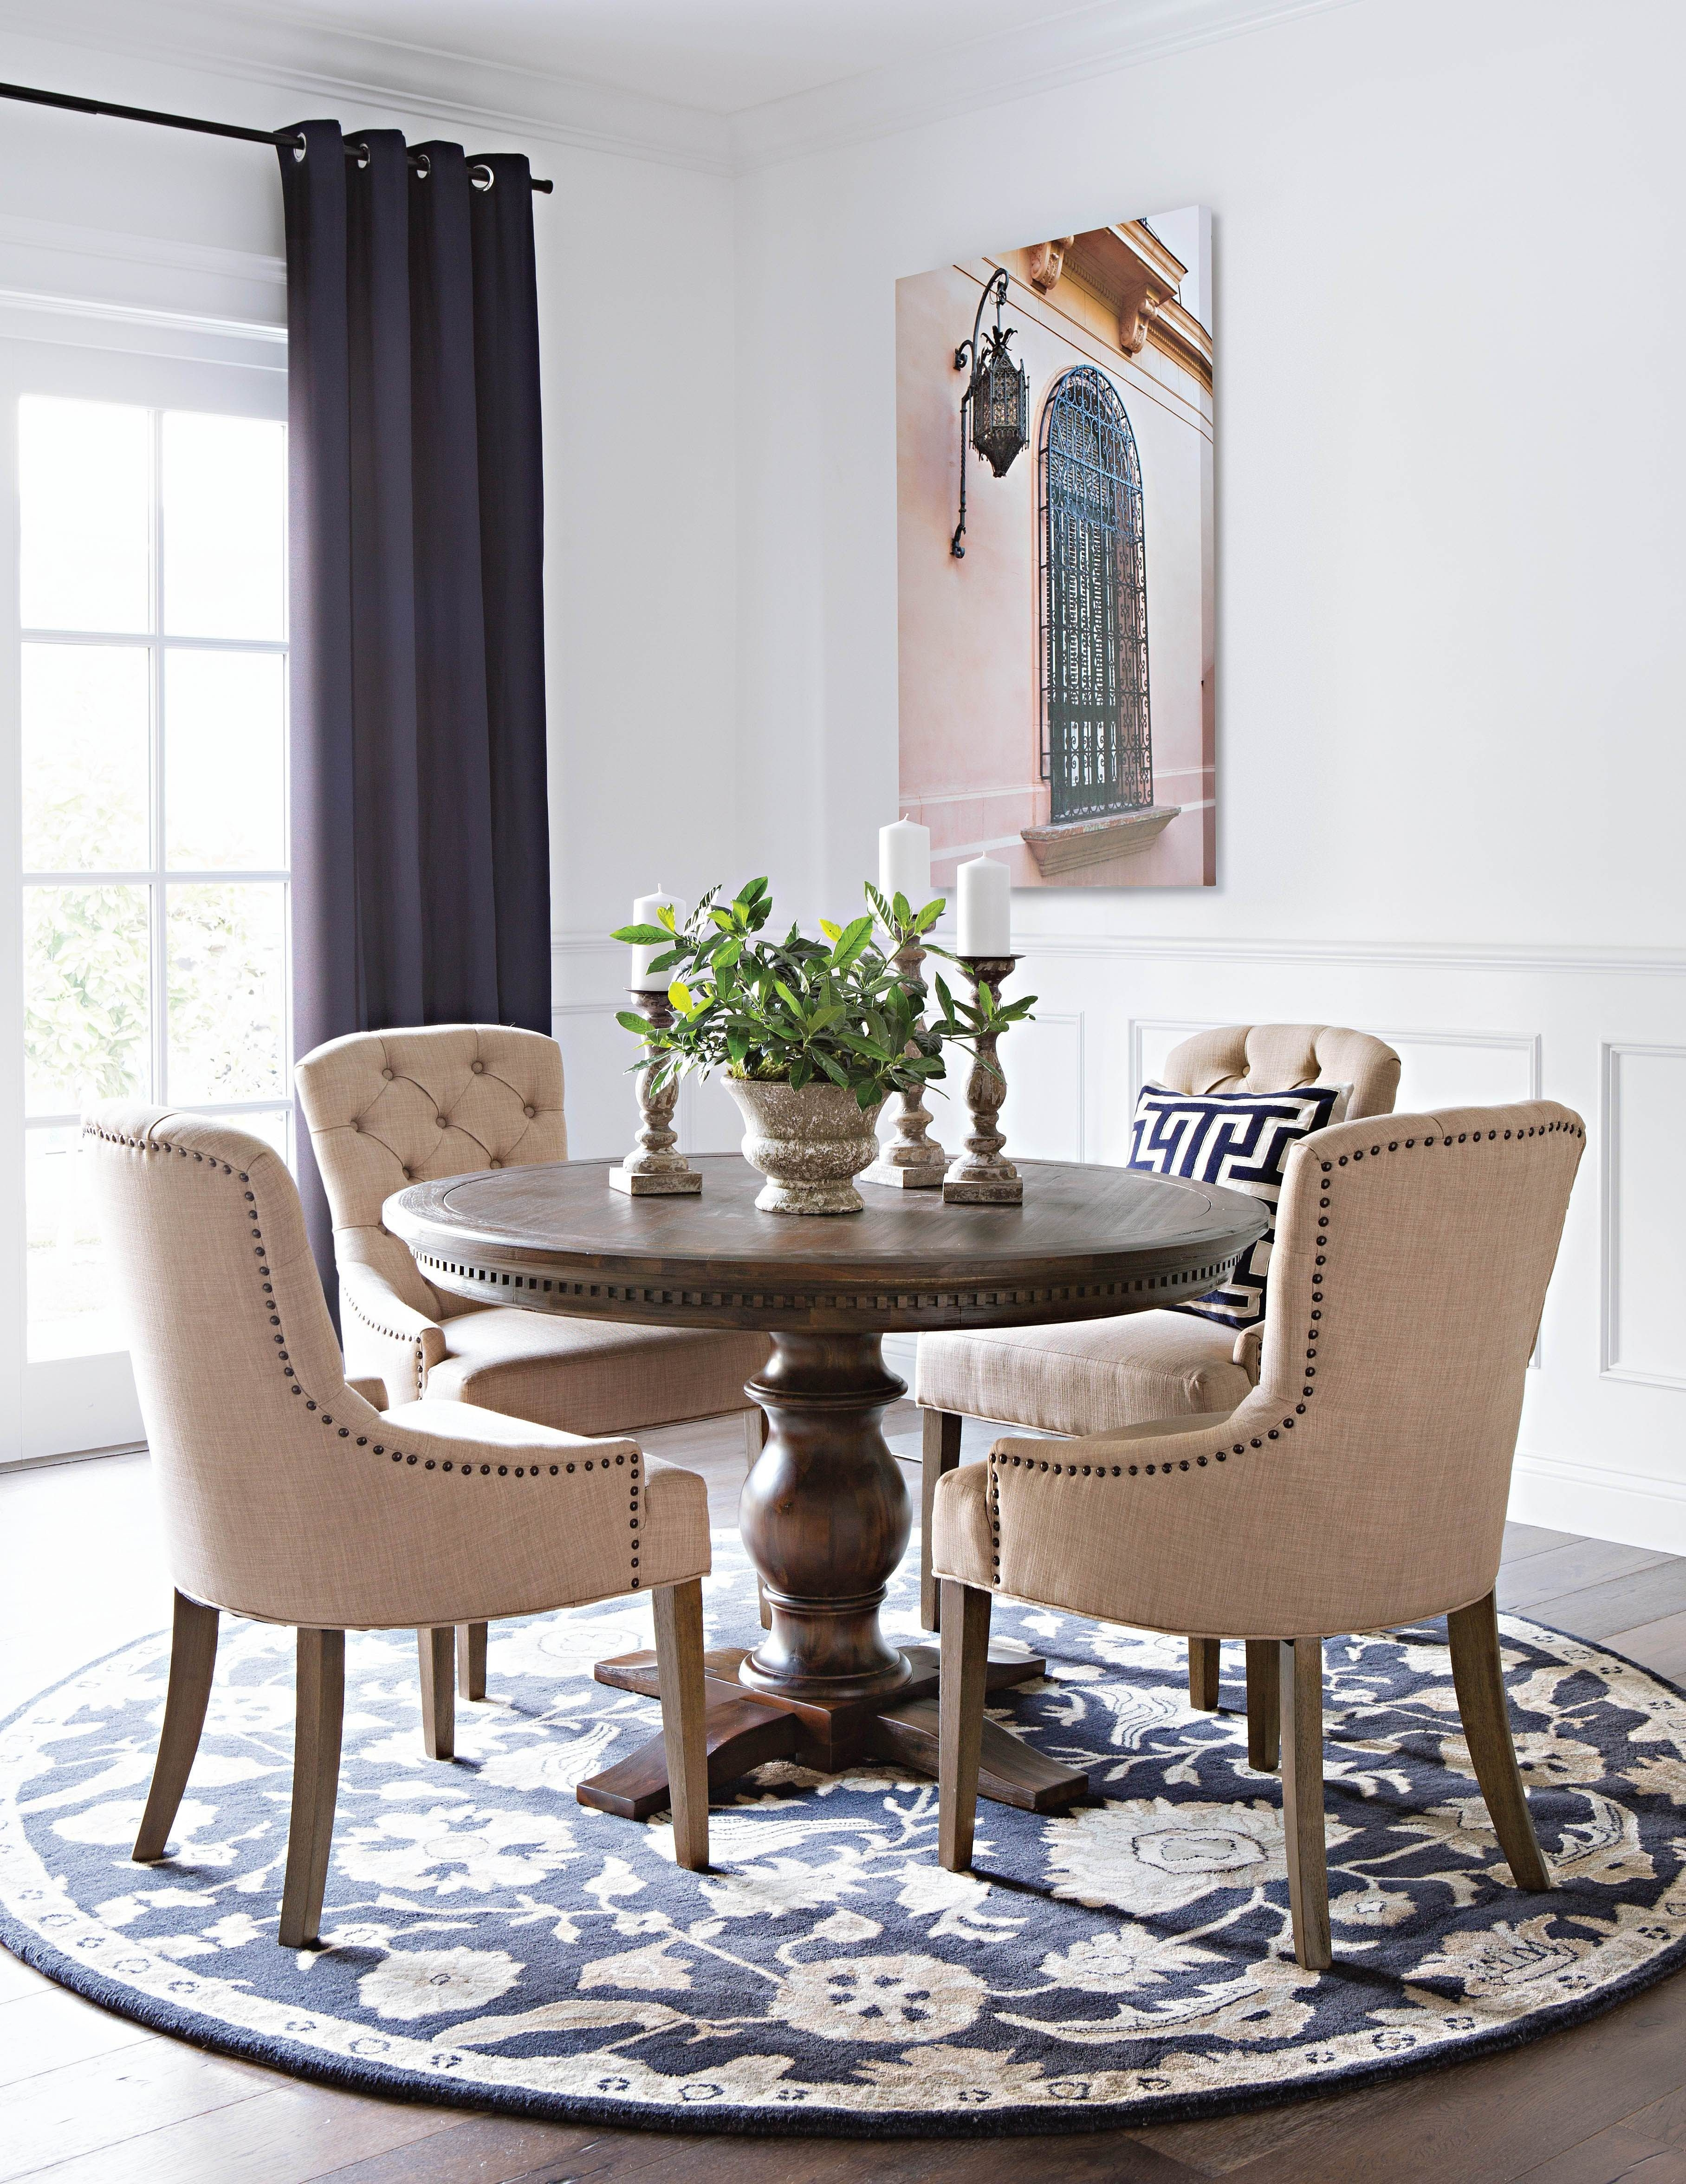 Jefferson 5 Piece Extension Round Dining Set, Brown | Pinterest With Regard To Most Up To Date Jefferson Extension Round Dining Tables (Photo 7 of 20)